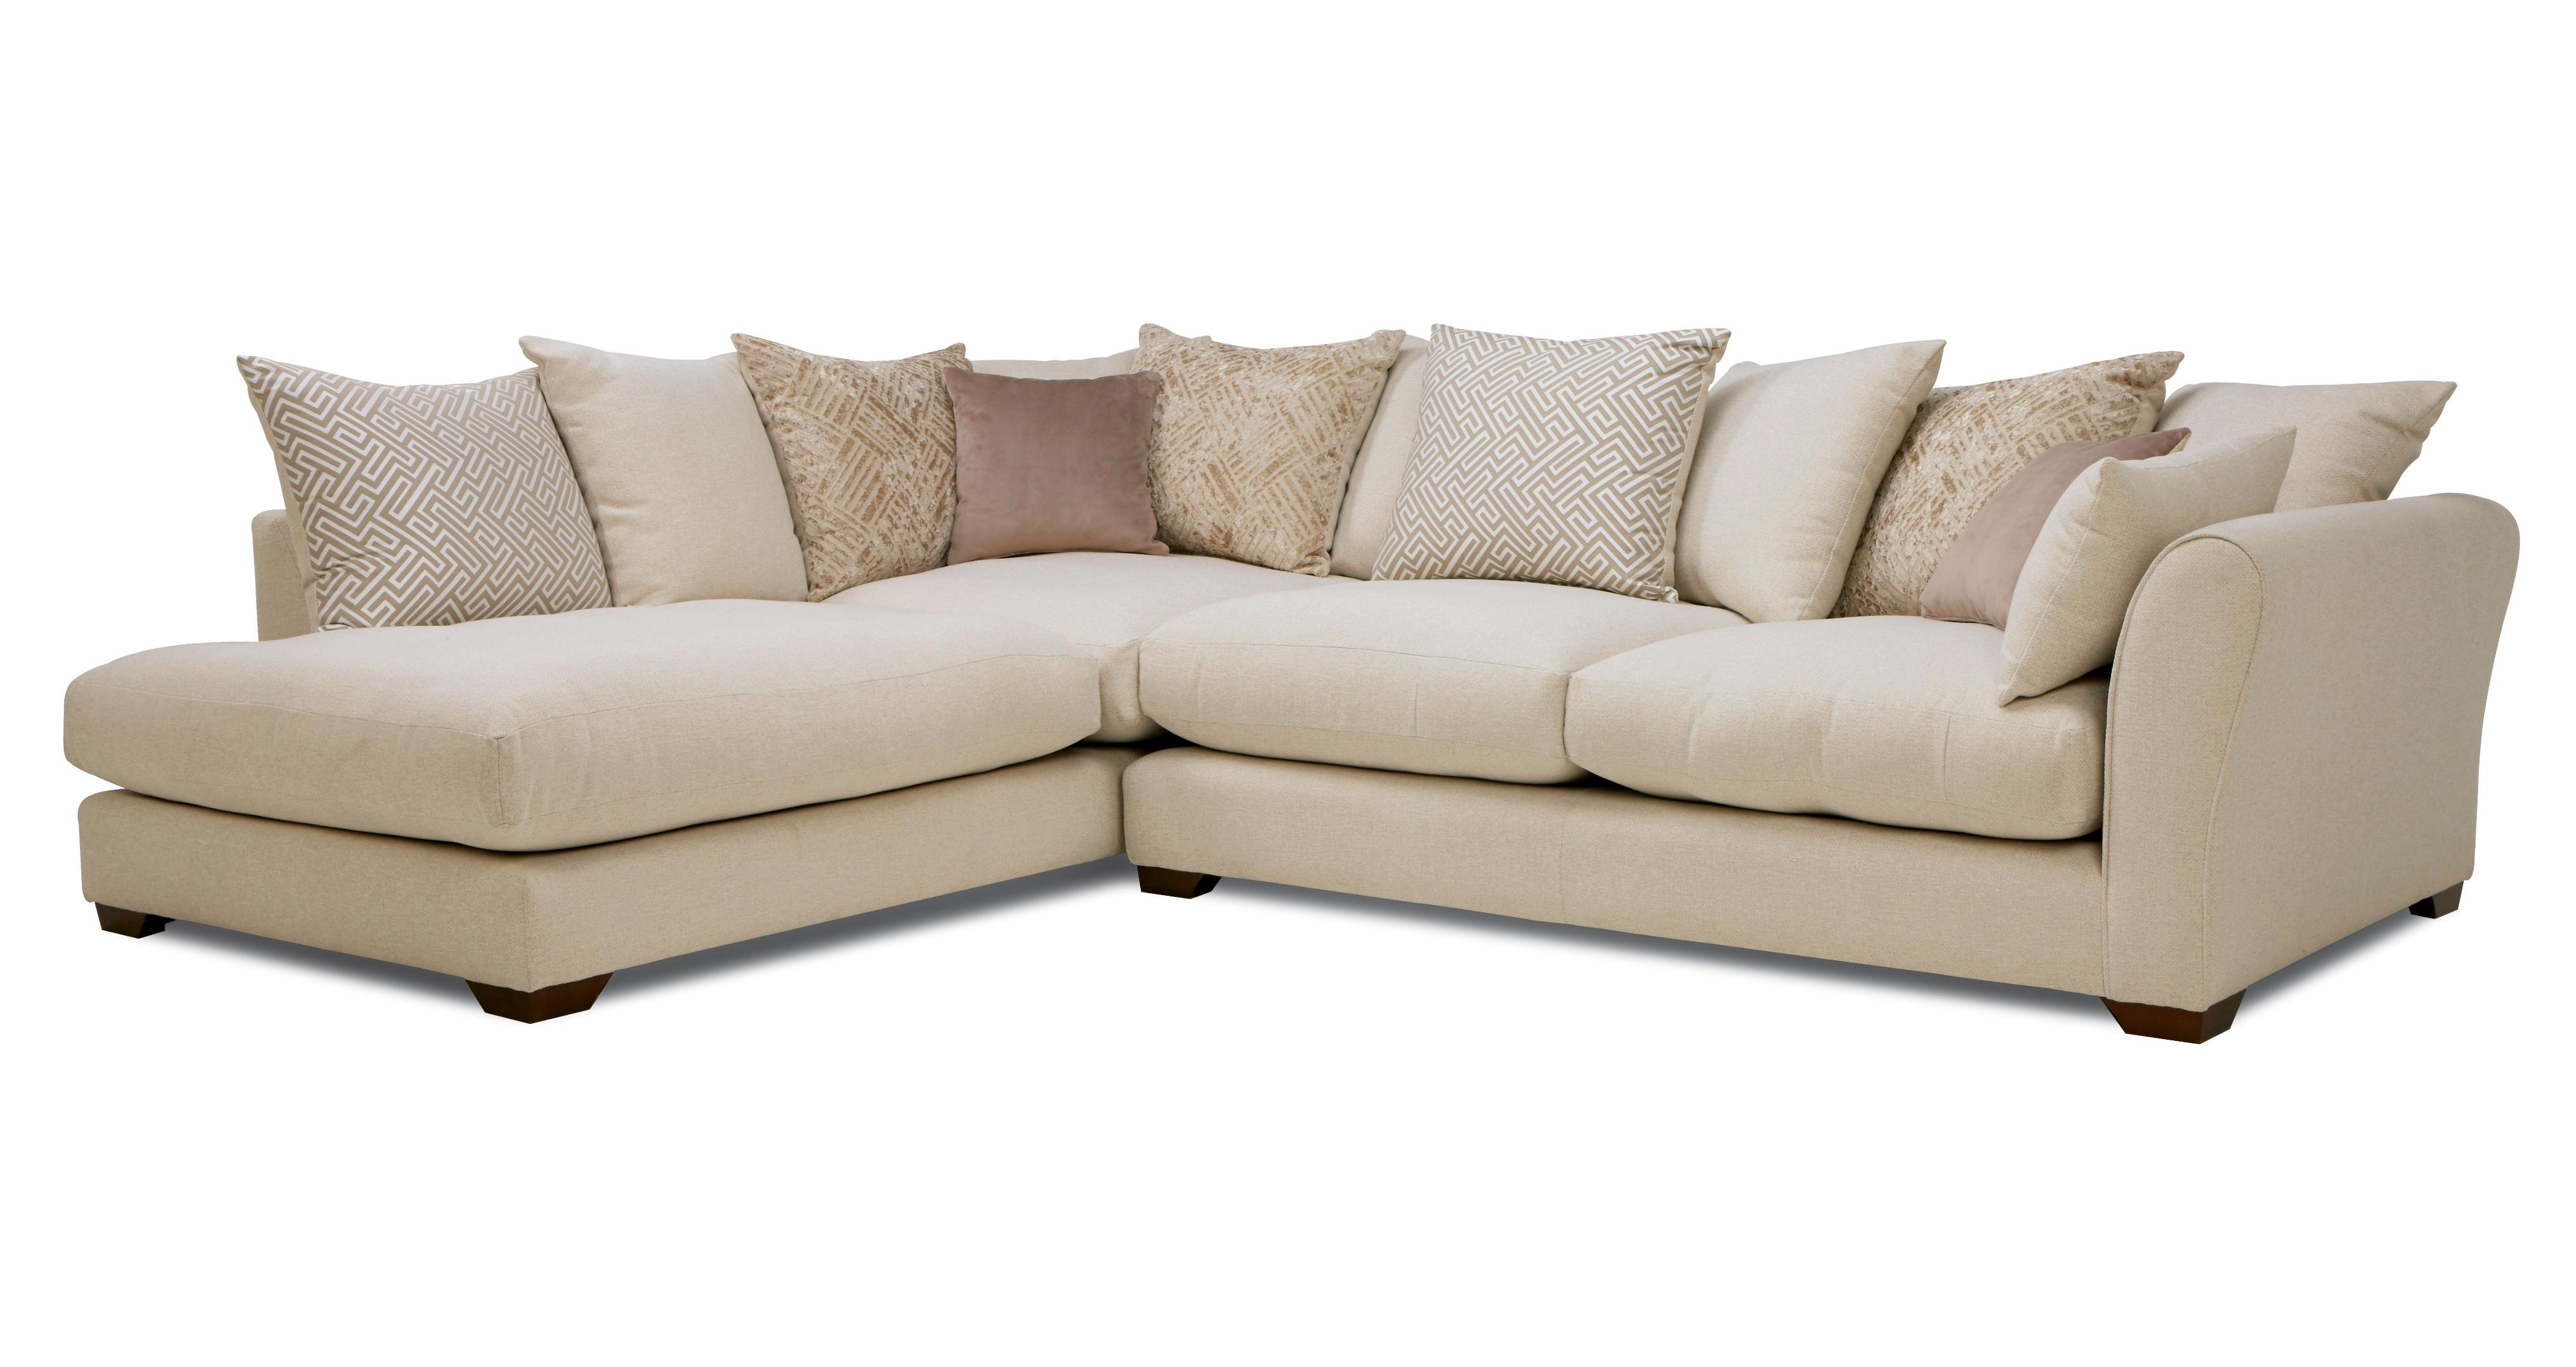 Dfs Corner Sofas Pay Monthly Okaycreations Net